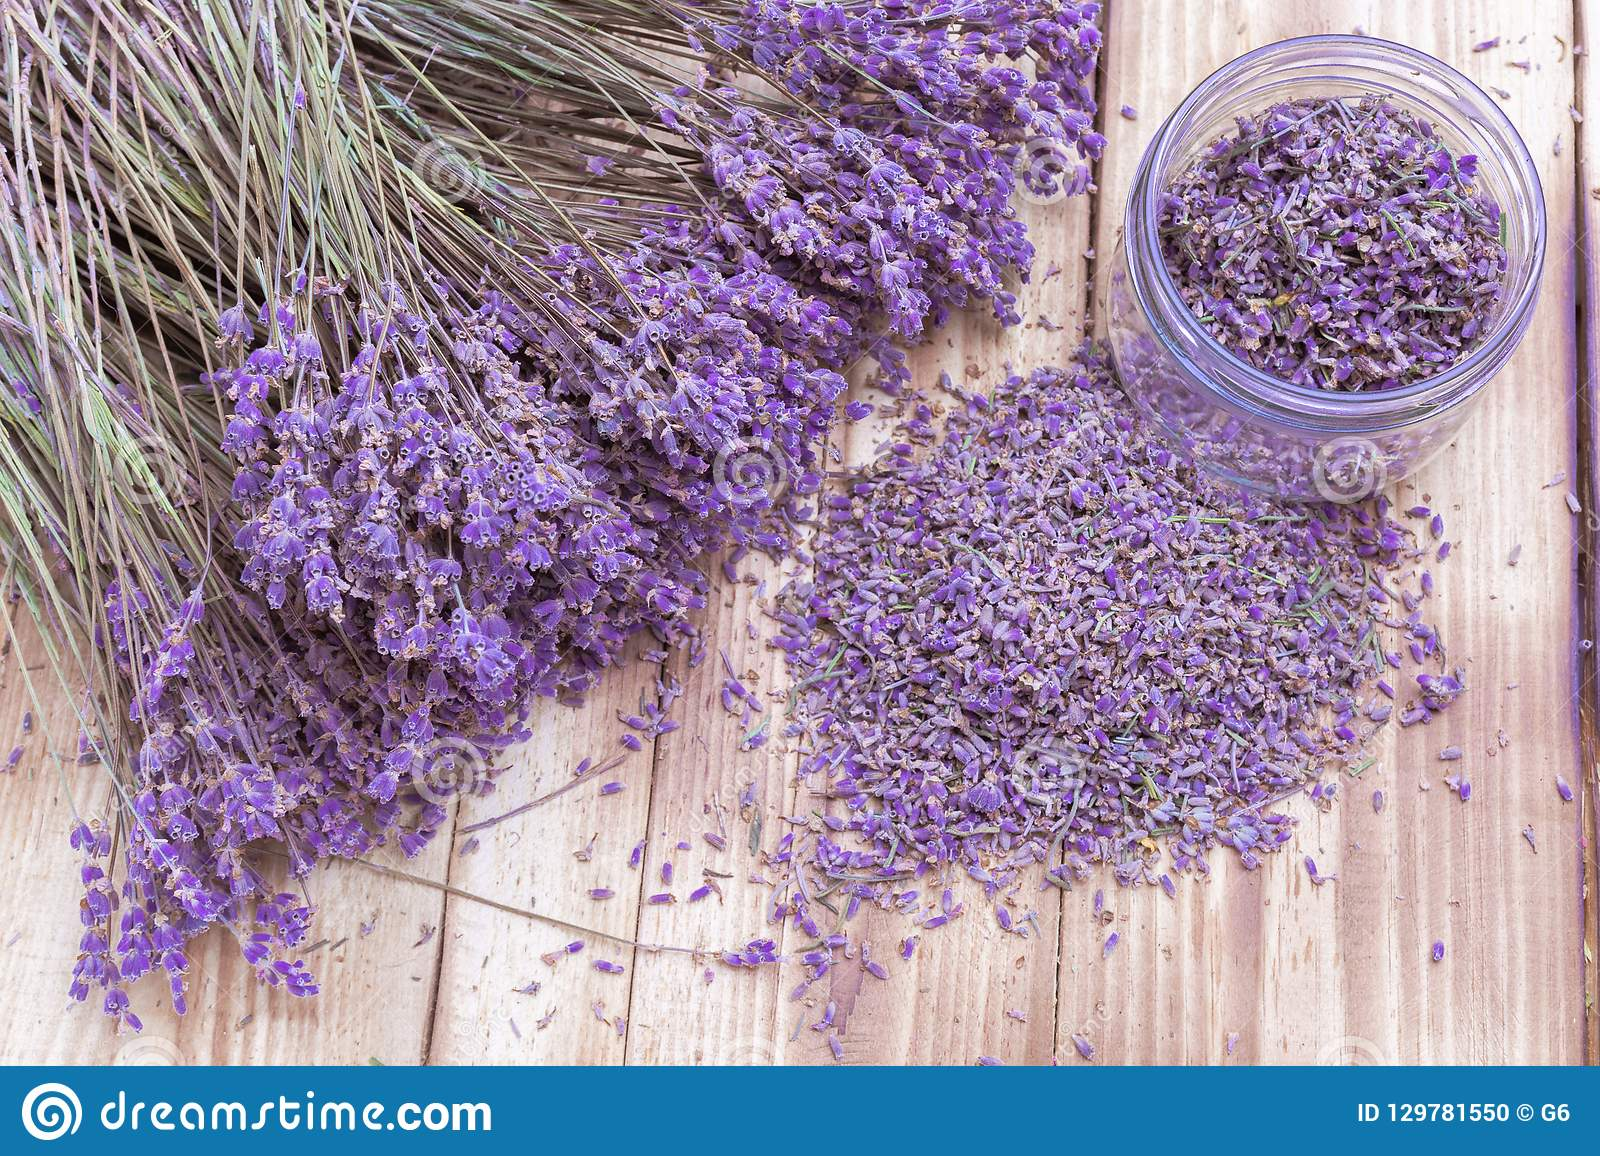 Lavender Dried Flowers In Jar Scattered And Bunch On Wooden Desk Stock Photo Image Of Bouquet Desk 129781550